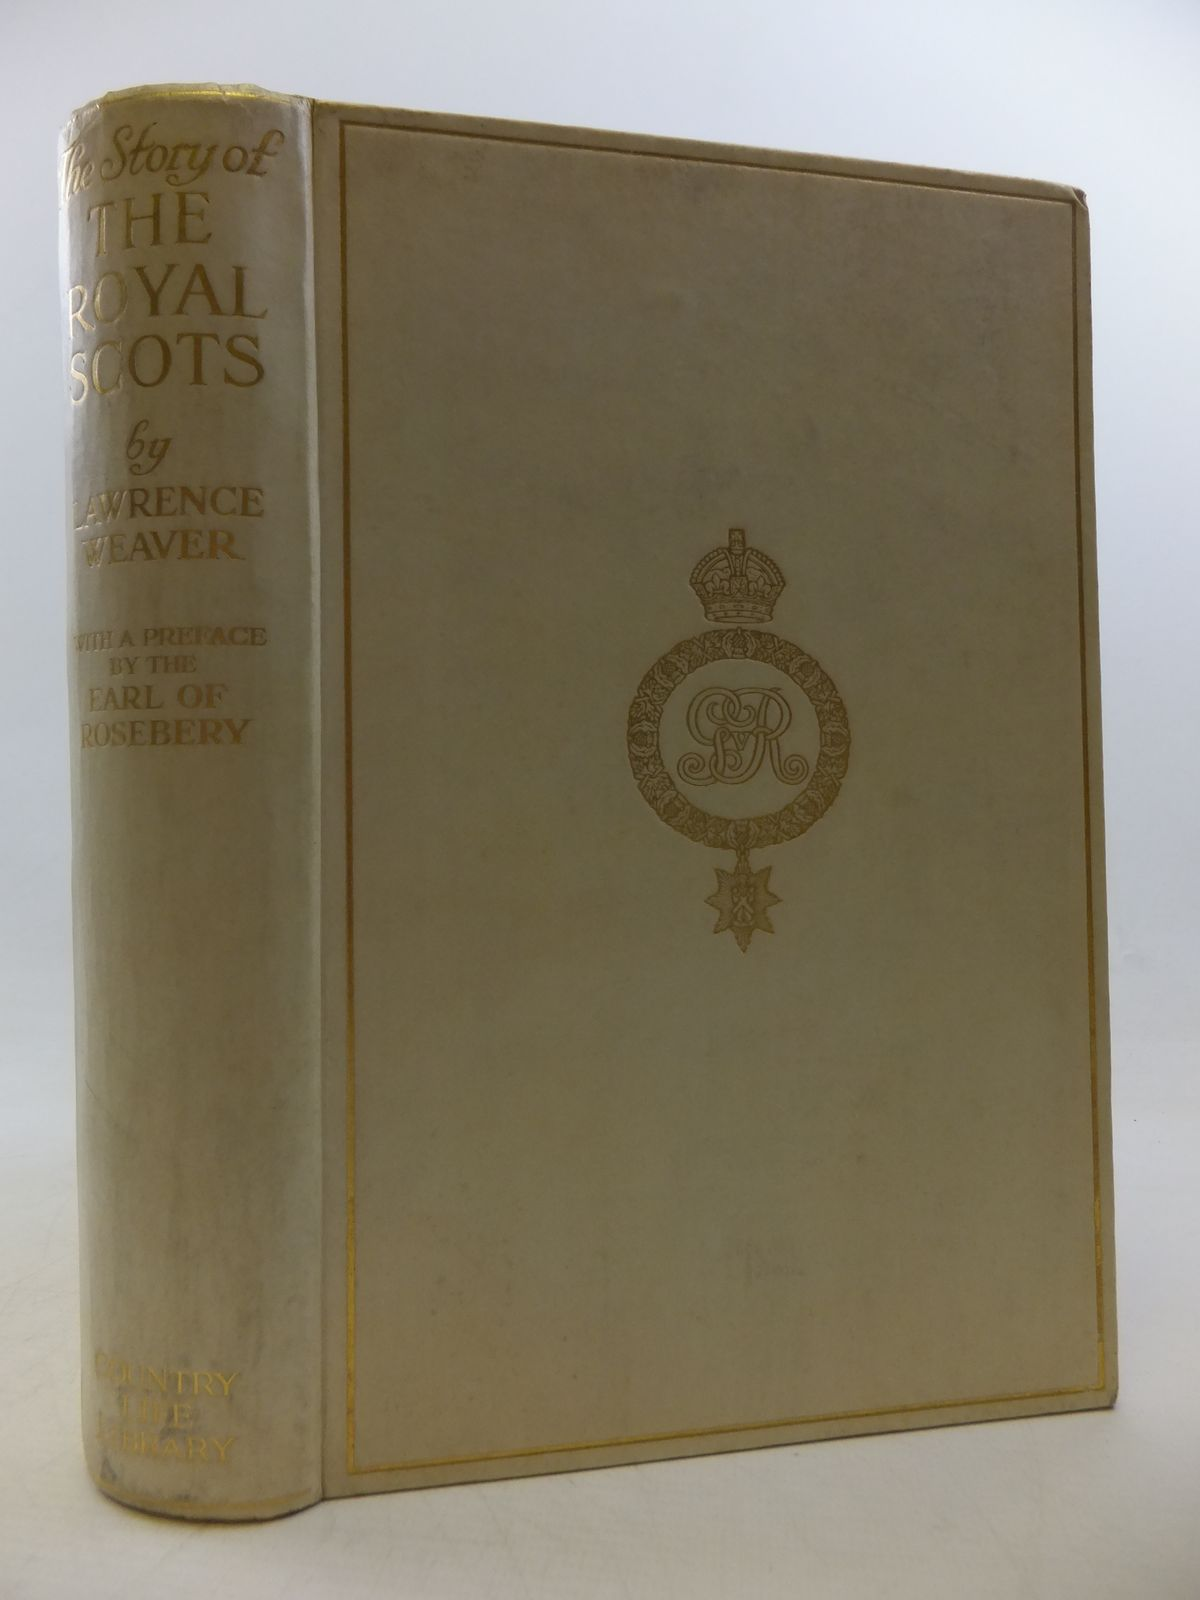 Photo of THE STORY OF THE ROYAL SCOTS written by Weaver, Lawrence published by Country Life (STOCK CODE: 2113253)  for sale by Stella & Rose's Books